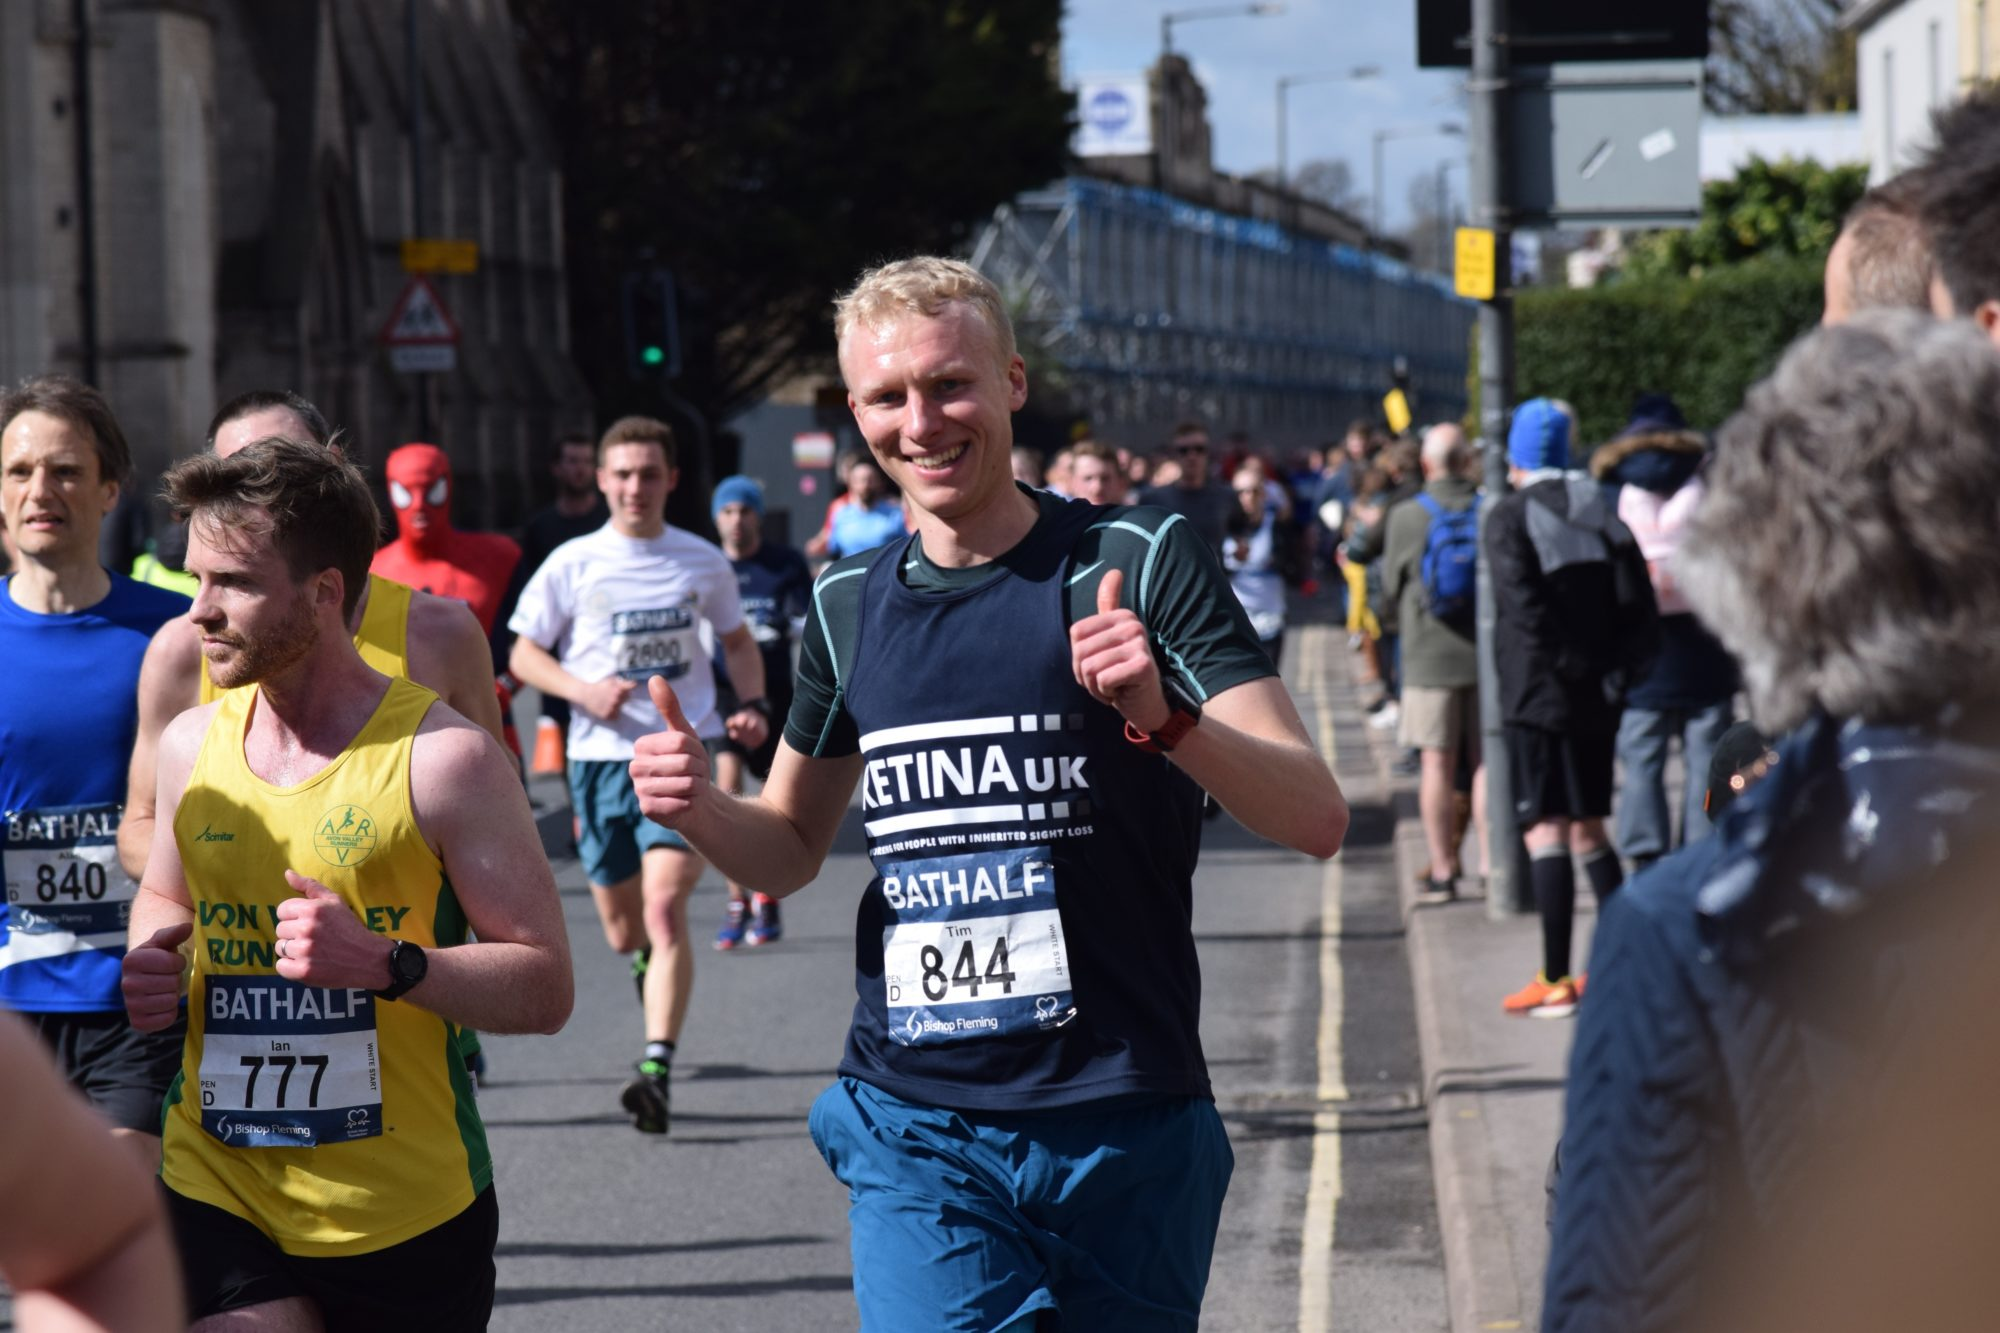 A man in a Retina UK tshirt running amongst other runners